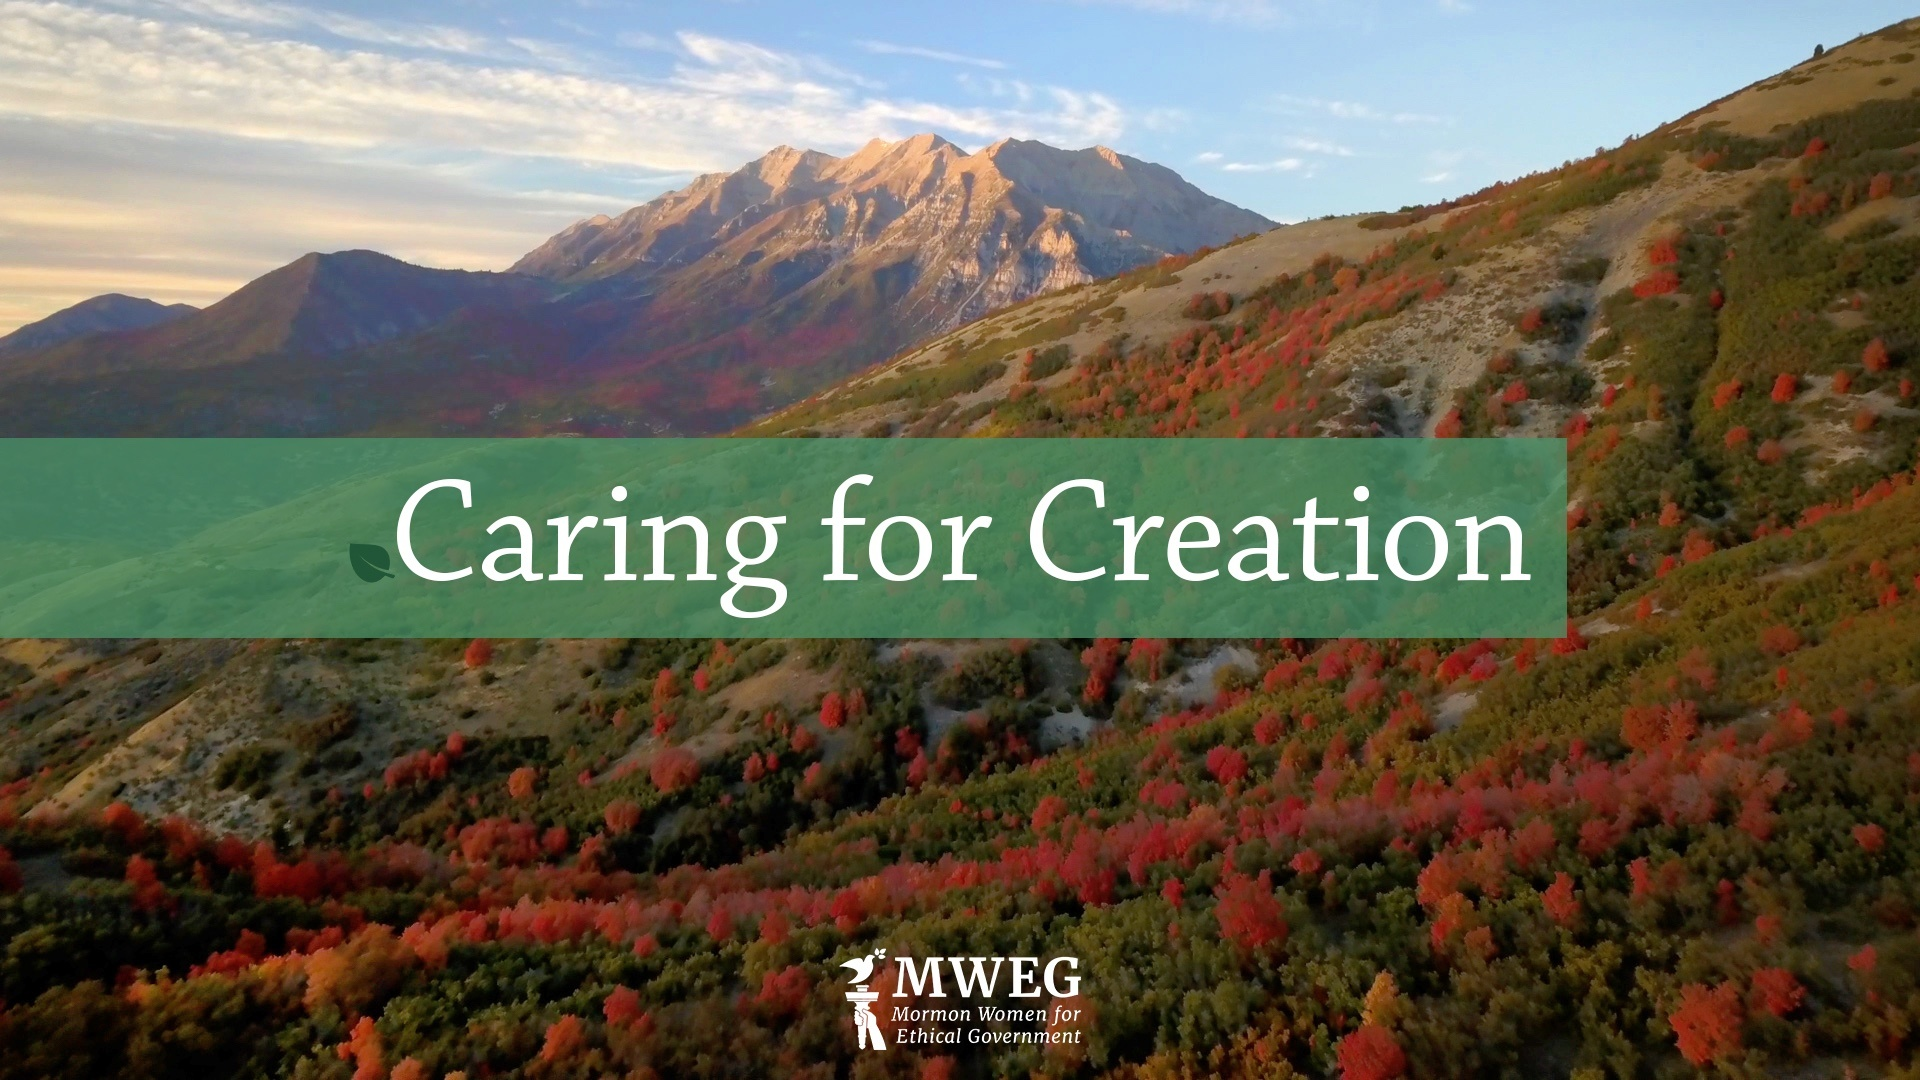 Mountain background with text Caring for Creation